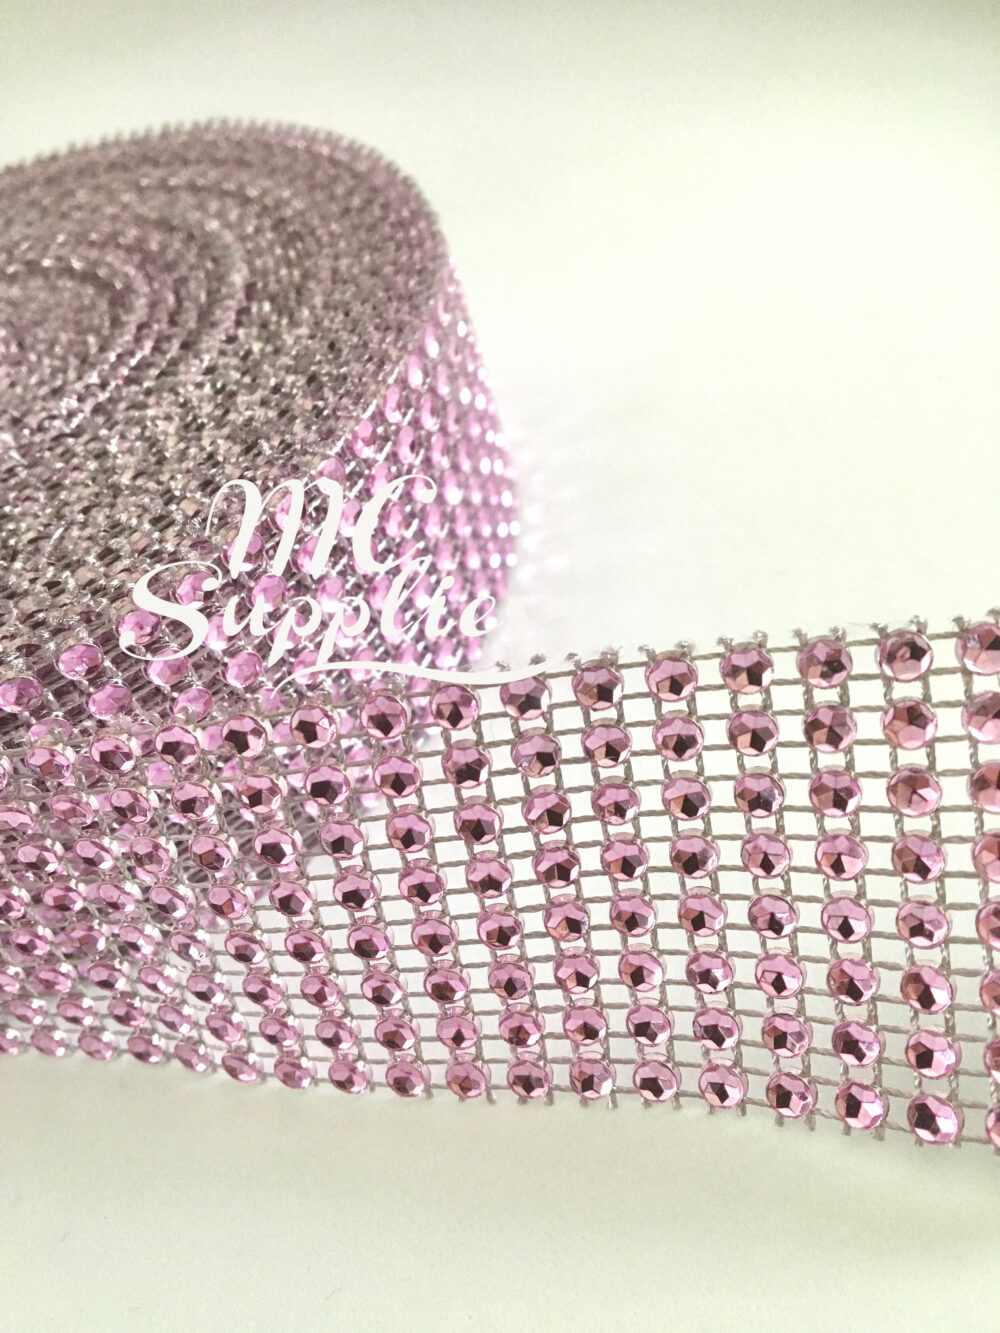 Diamond Mesh Ribbon, Rhinestone Trim, Jewel Ribbon, Mesh By The Yard, Wedding Mesh, Wedding Cake Decoration, Scrapbooking Rhinestone, 73